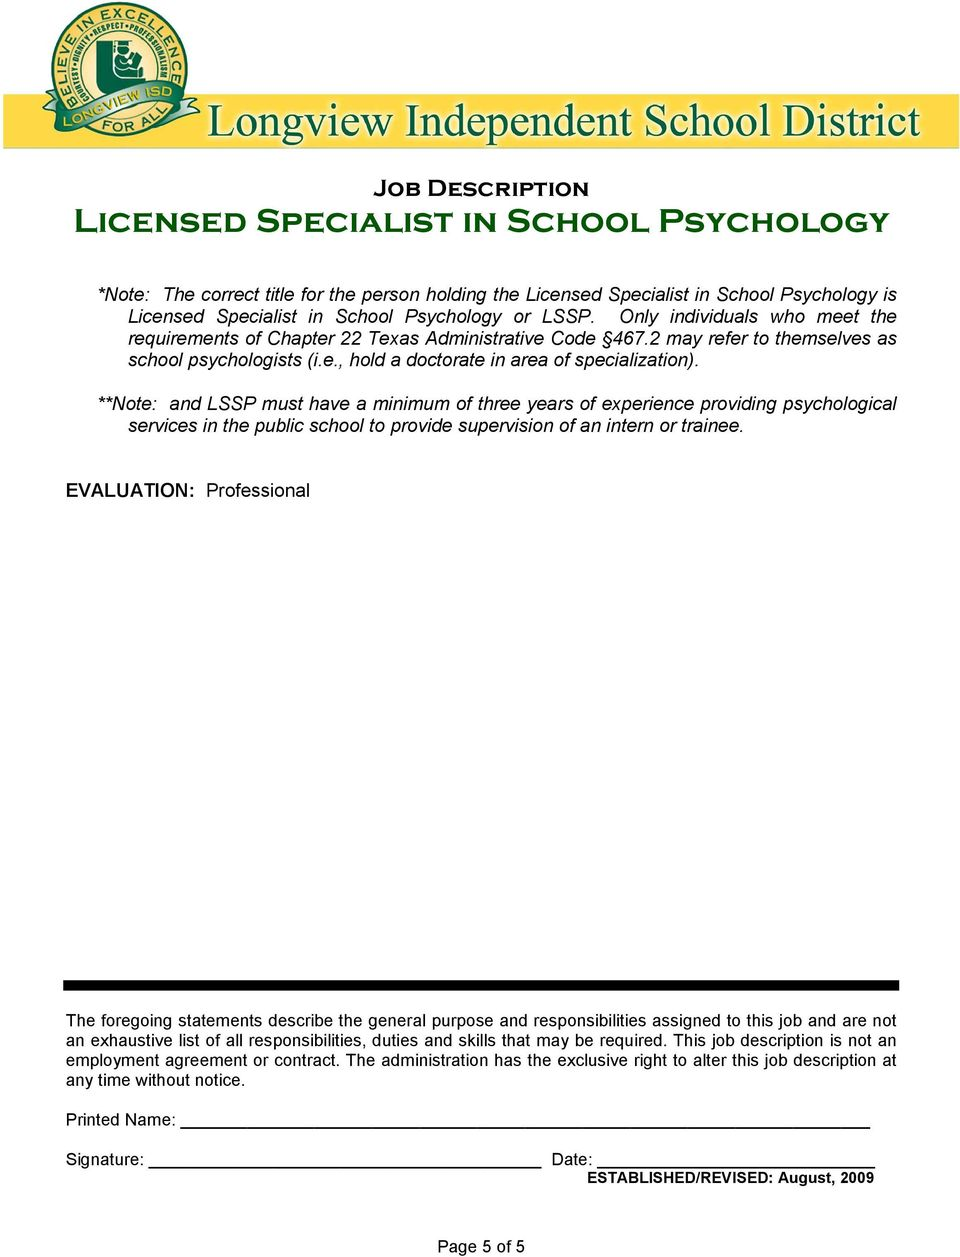 **Note: and LSSP must have a minimum of three years of experience providing psychological services in the public school to provide supervision of an intern or trainee.